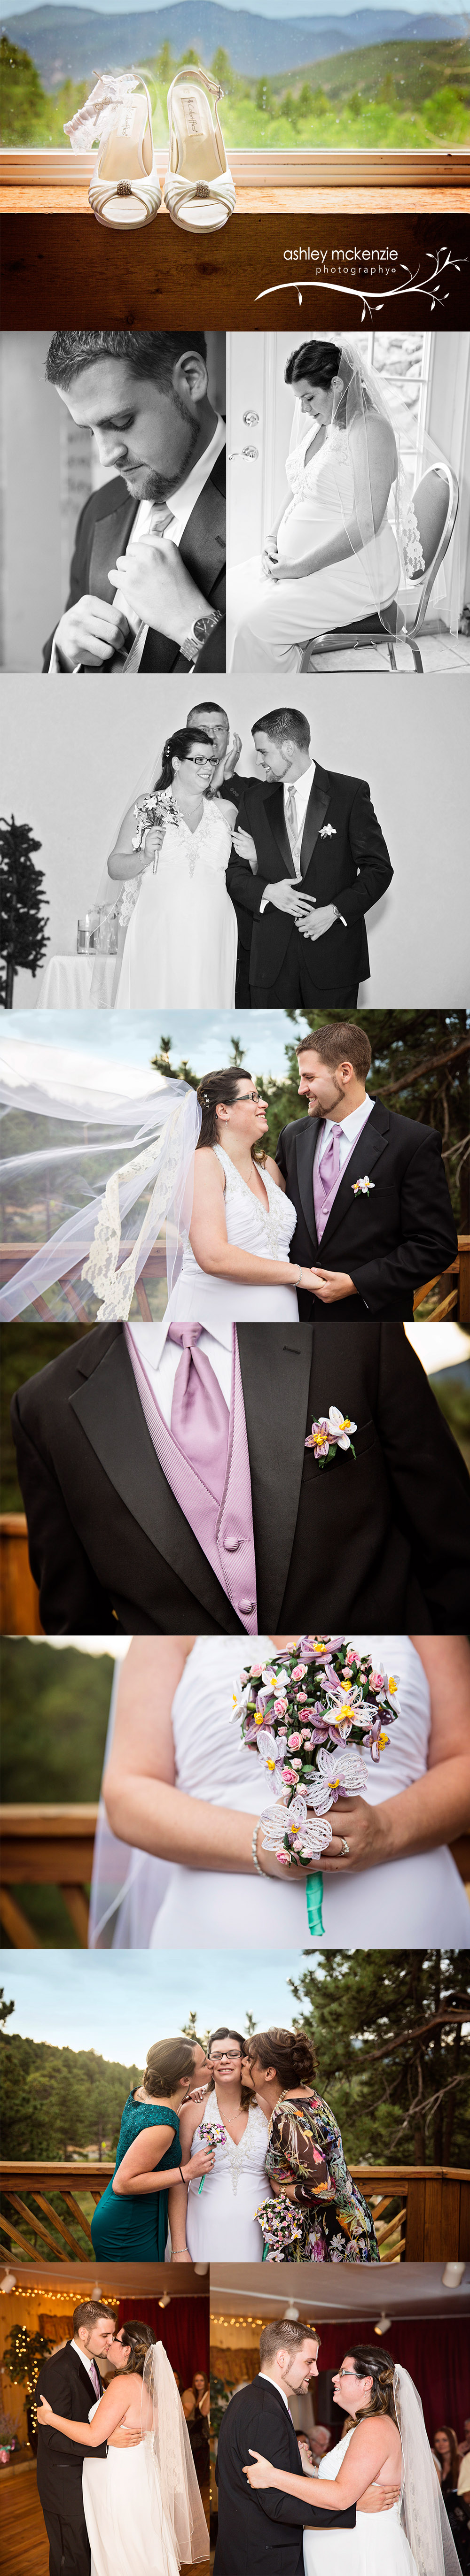 Wedding Photography by Ashley McKenzie Photography in Golden, Colorado